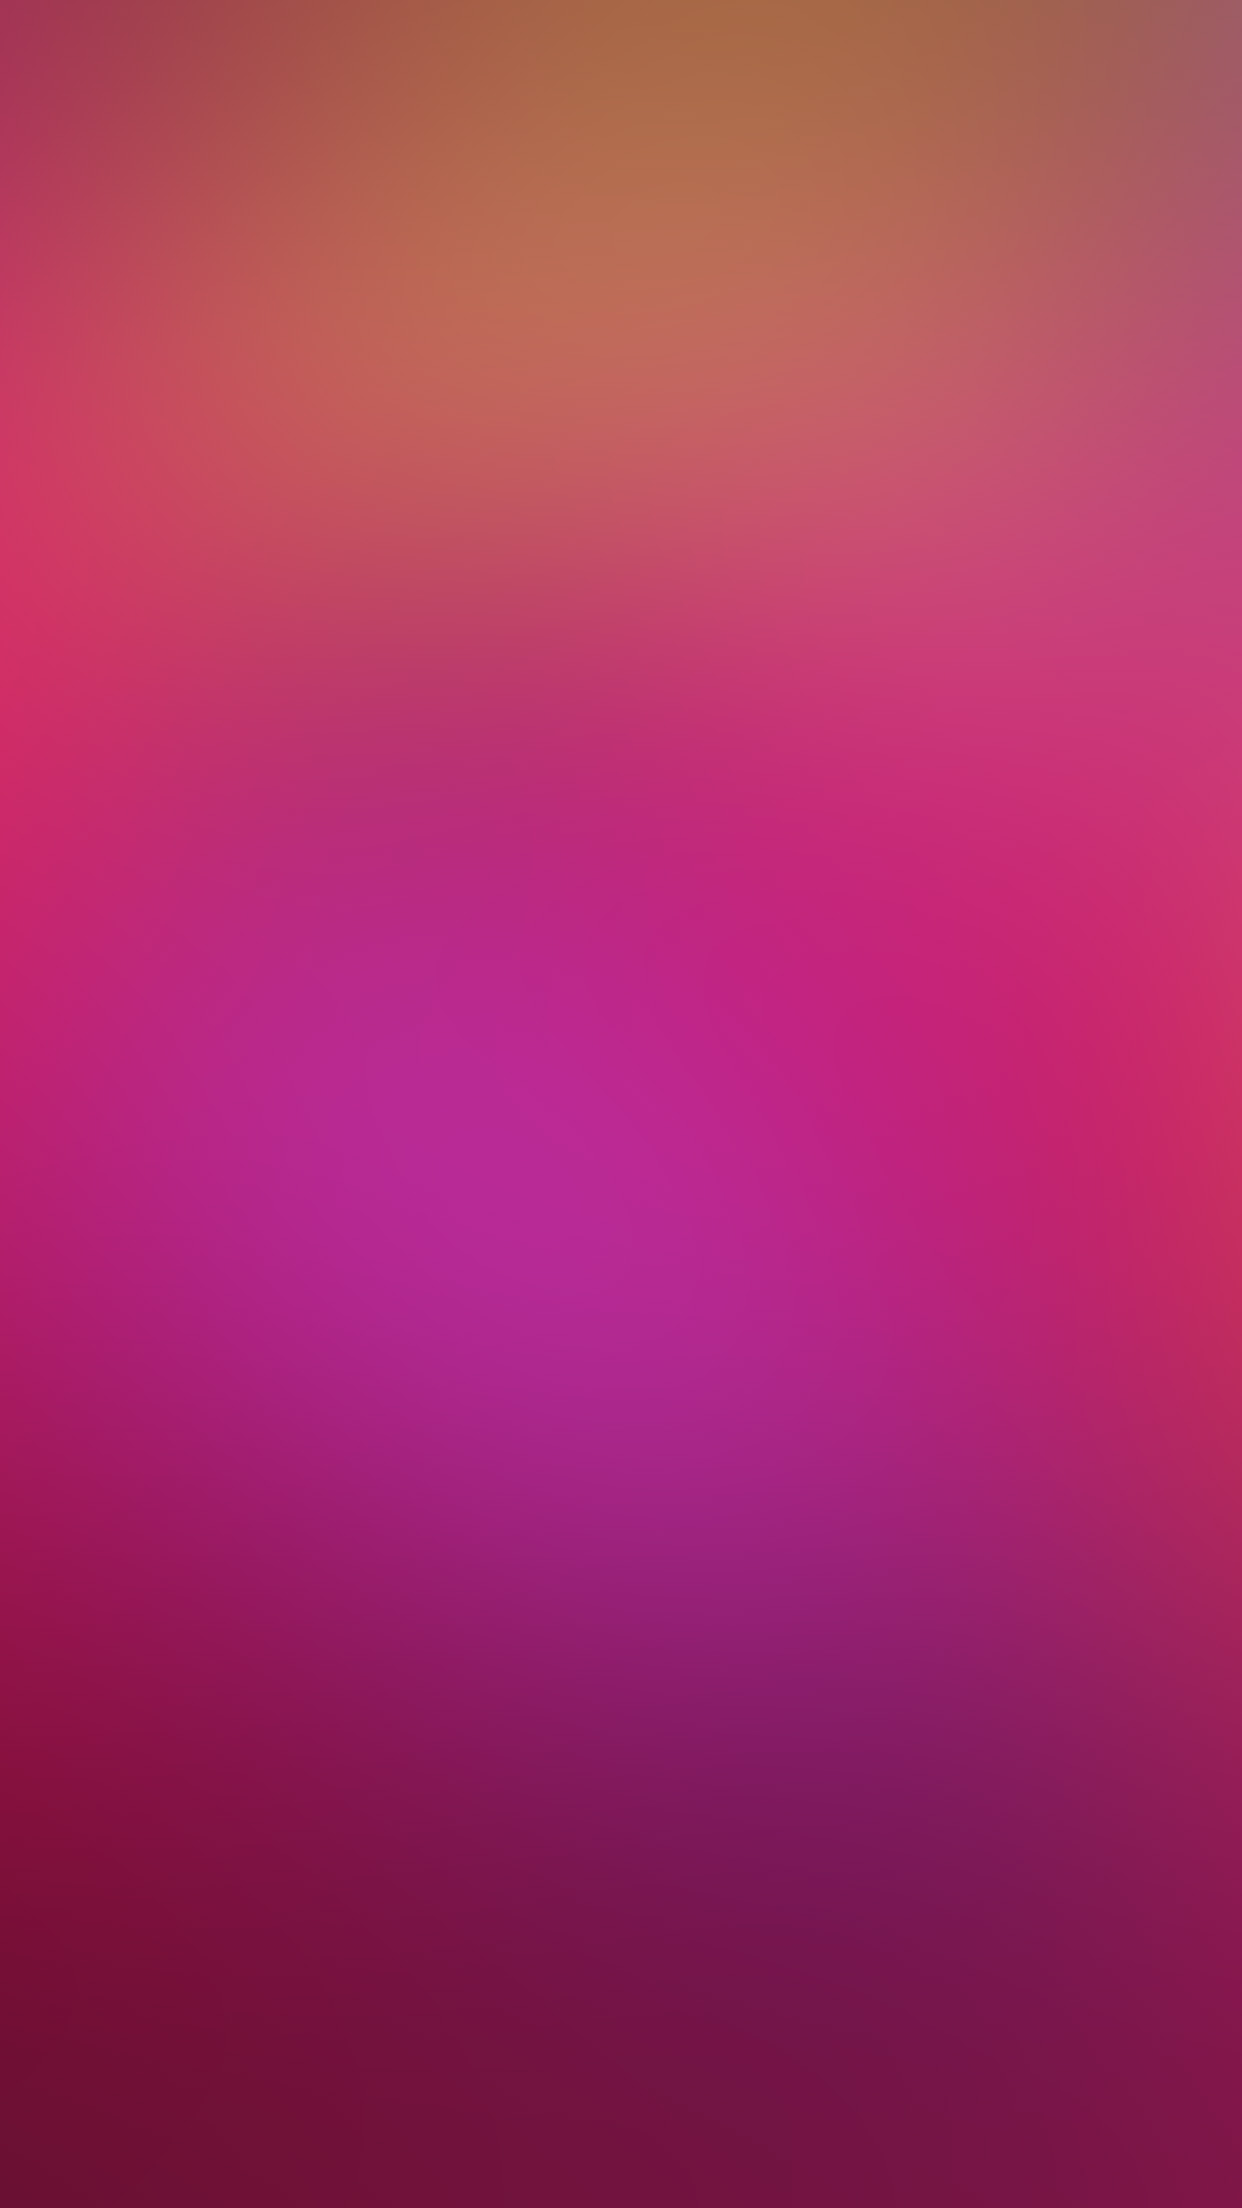 Wallpaper Cute Pink For Iphone 6 Sh12 Hot Pink Red Gradation Blur Papers Co